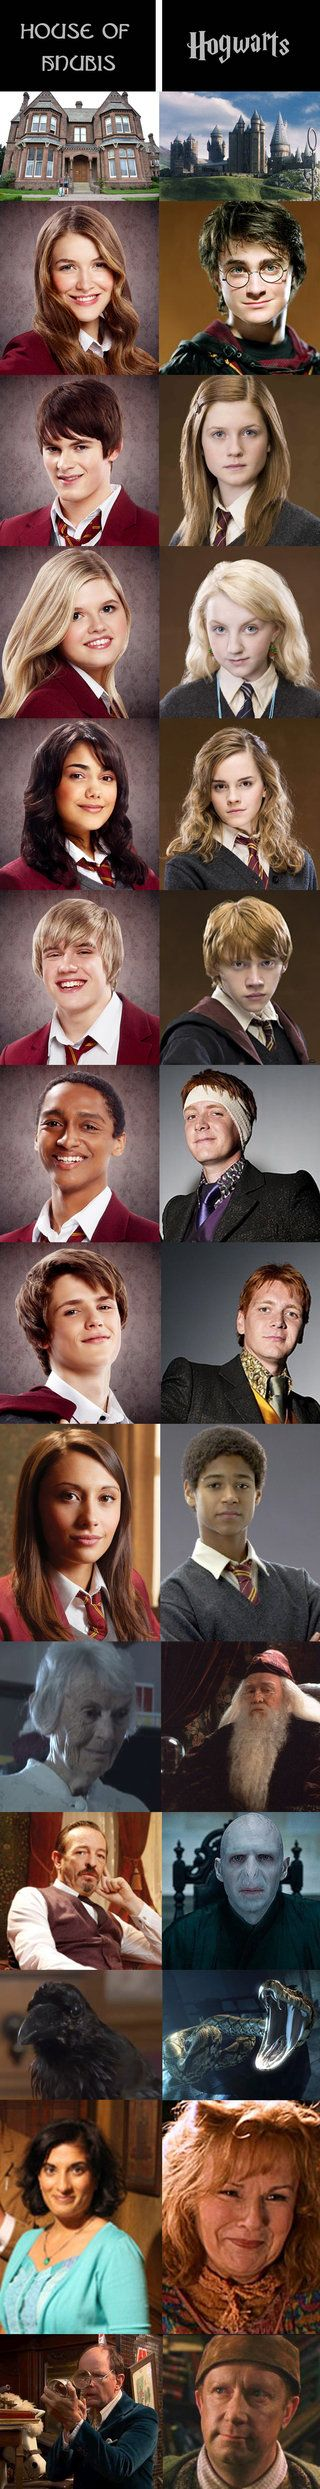 House of Anubis vs. Hogwarts by fruitloopcreamsoda on deviantART  I just noticed this!